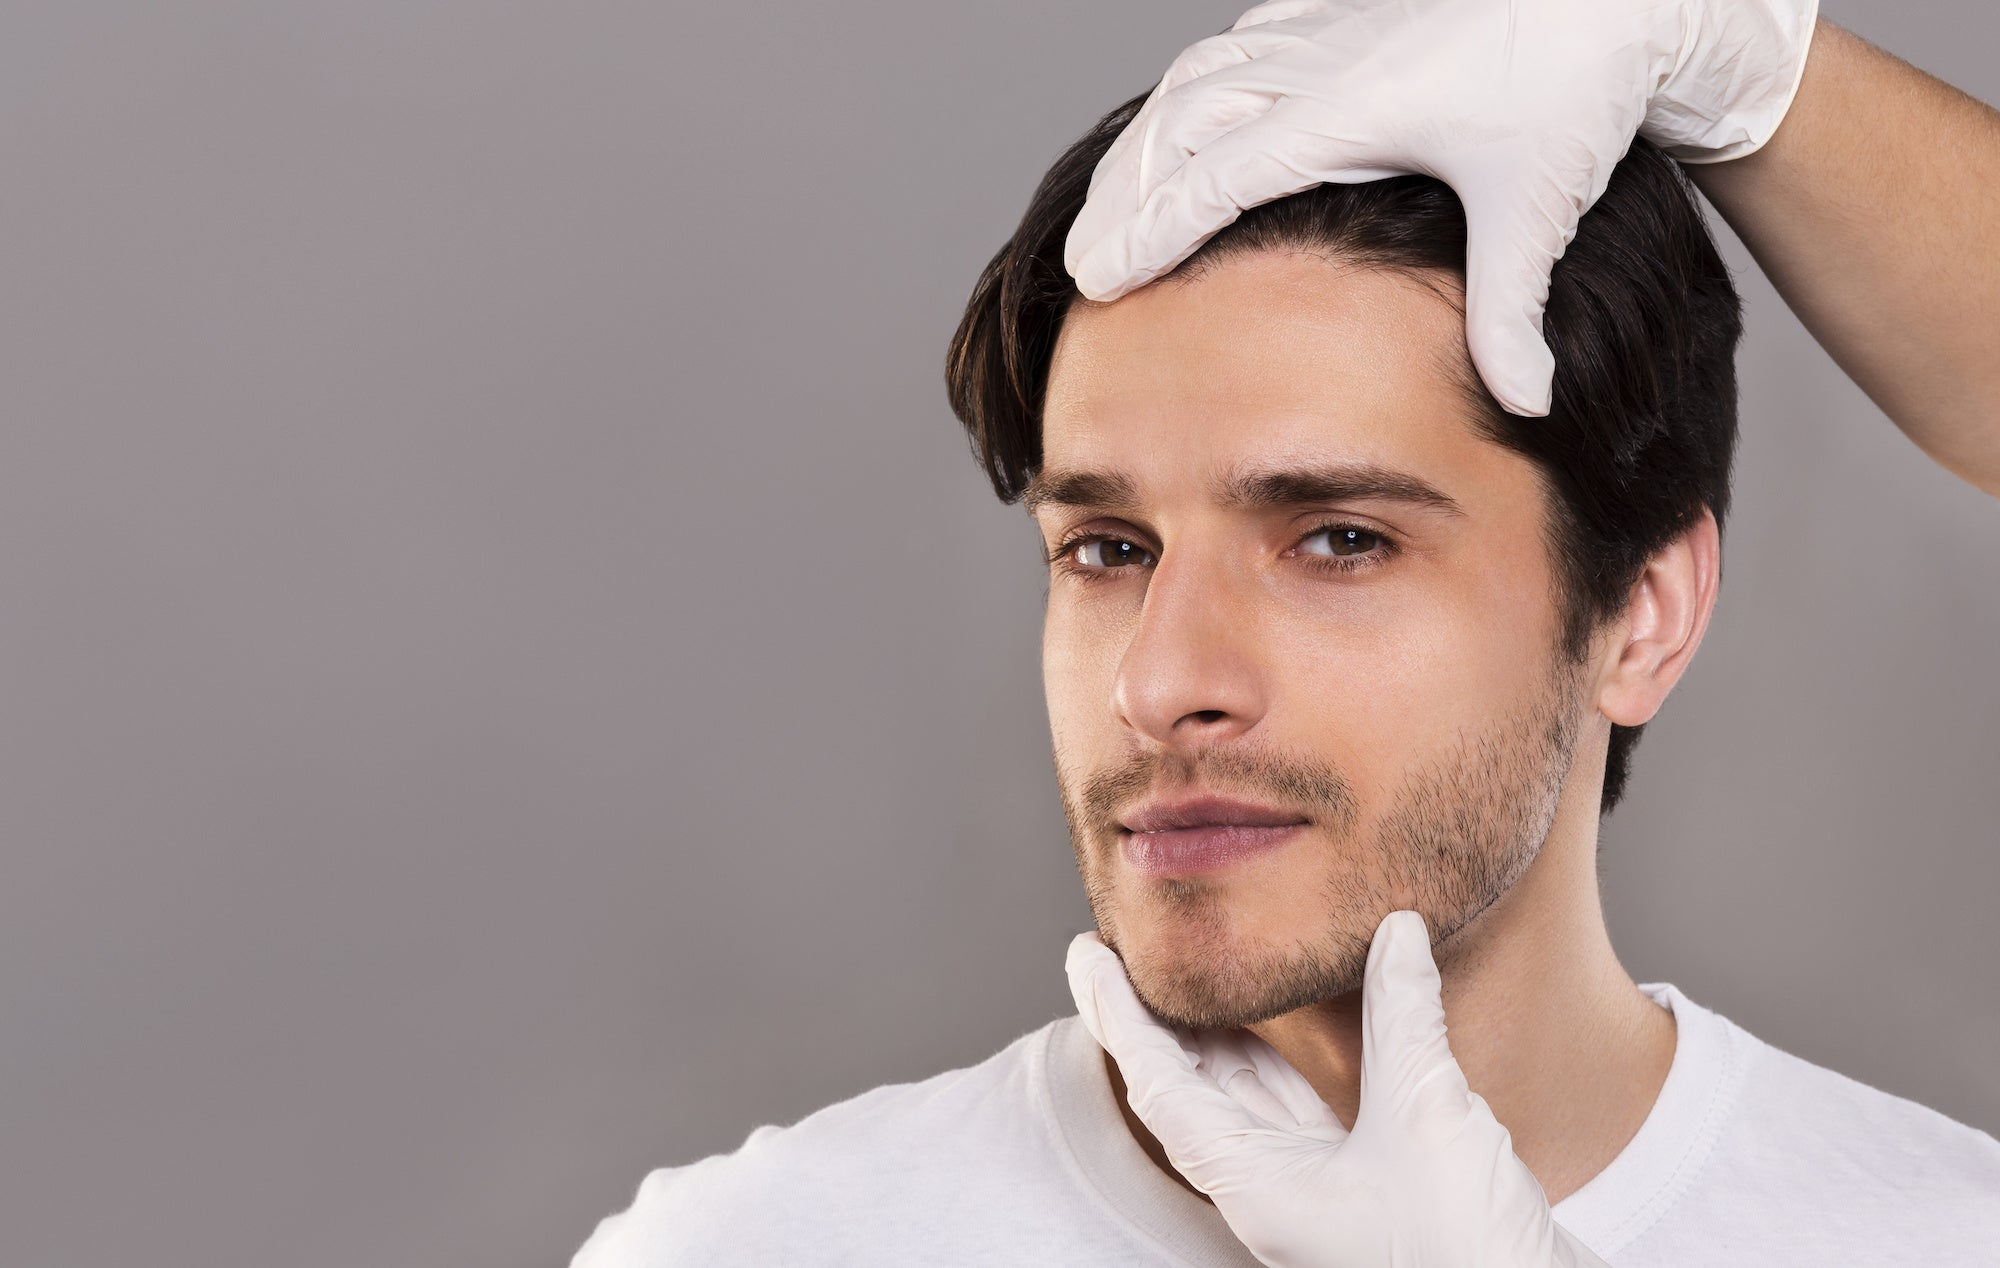 The Top 10 Most Popular Male Cosmetic Procedures